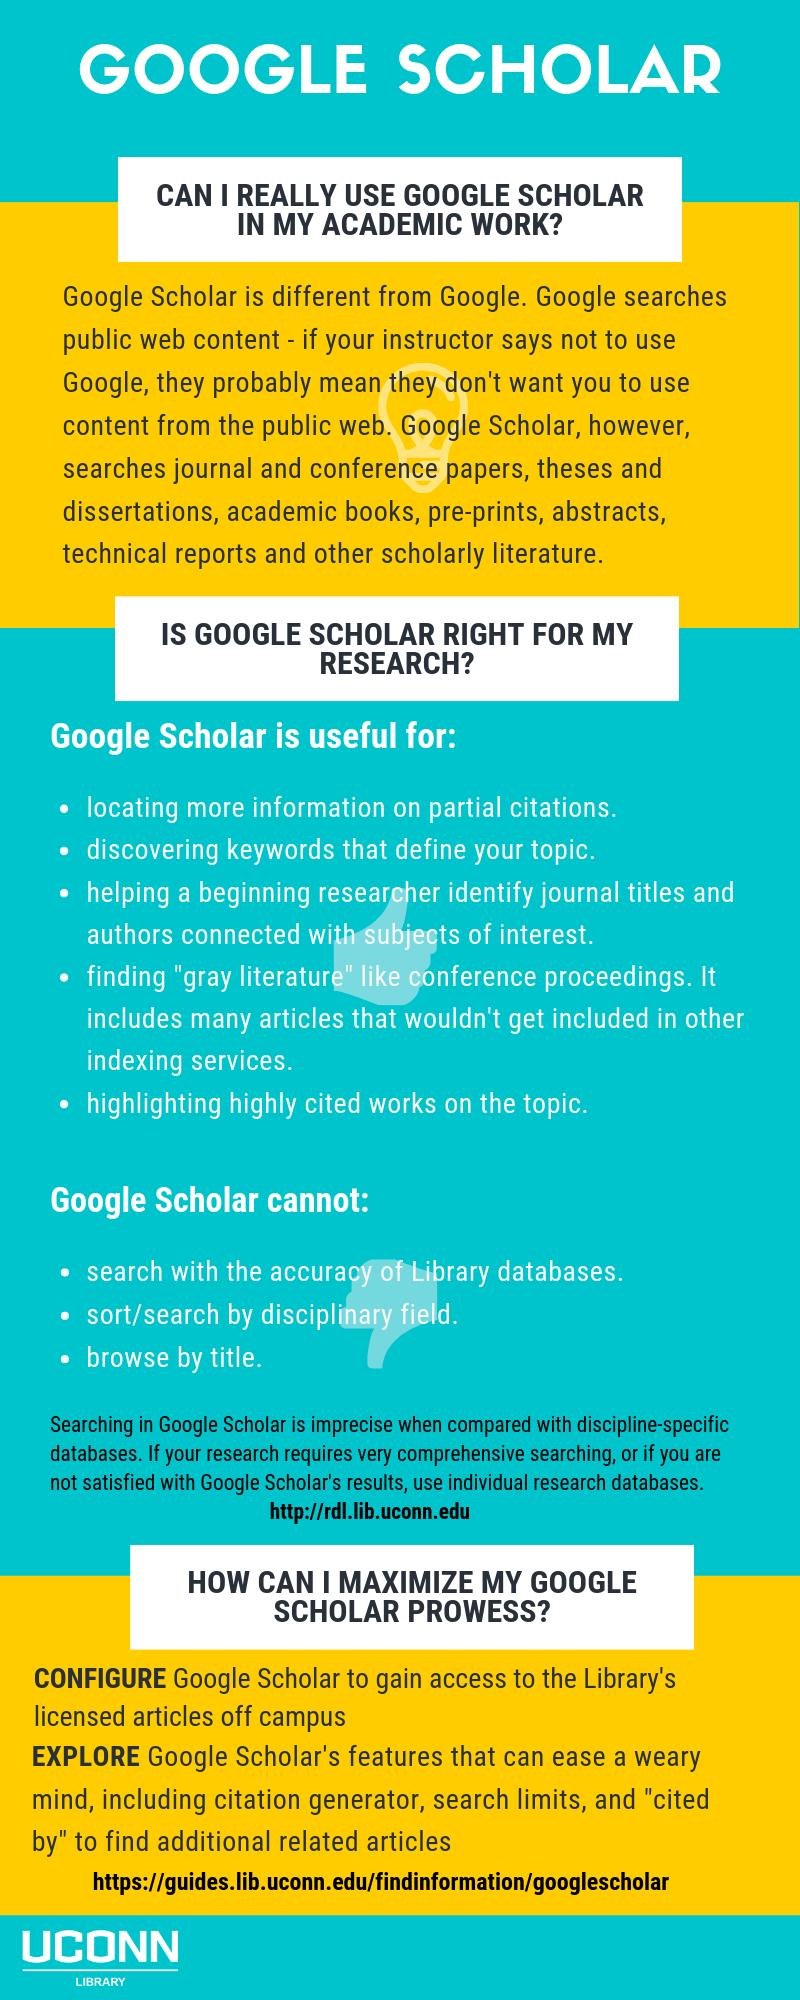 "Google Scholar. Can I really use Google Scholar in my academic work?  Google Scholar is different from Google.  Google searches public web content - if your instructor says not to use Google, they probably mean they don't want you to use content from the public web.  Google Scholar, however, searches journal and conference papers, theses and dissertations, academic books, pre-prints, abstracts, technical reports, and other scholarly literature. Is Google Scholar right for my research?  Google Scholar is useful for: locating more information on partial citations. discovering keywords that define your topic. helping a beginning researcher identify journal titles and authors connected with subjects of interest. finding ""gray literature"" like conference proceedings.  It includes many articles that wouldn't get included in other indexing services. highlighting highly cited works on the topic. Google Scholar cannot: search with the accuracy of Library databases. sort/search by disciplinary field. browse by title.  Searching in Google Scholar is imprecise when compared with discipline-specific databases.  If your research requires very comprehensive searching, or if you are not satisfied with Google Scholar's results, use individual databases.  https://rdl.lib.uconn.edu  How can I maximize my Google Scholar prowess?  Configure Google Scholar to gain access to the Library's licensed articles off campus.  Explore Google Scholar's features that can ease a weary mind, including citation generator, search limits, and ""cited by"" to find additional related articles.  https://guides.lib.uconn.edu/findinformation/googlescholar"